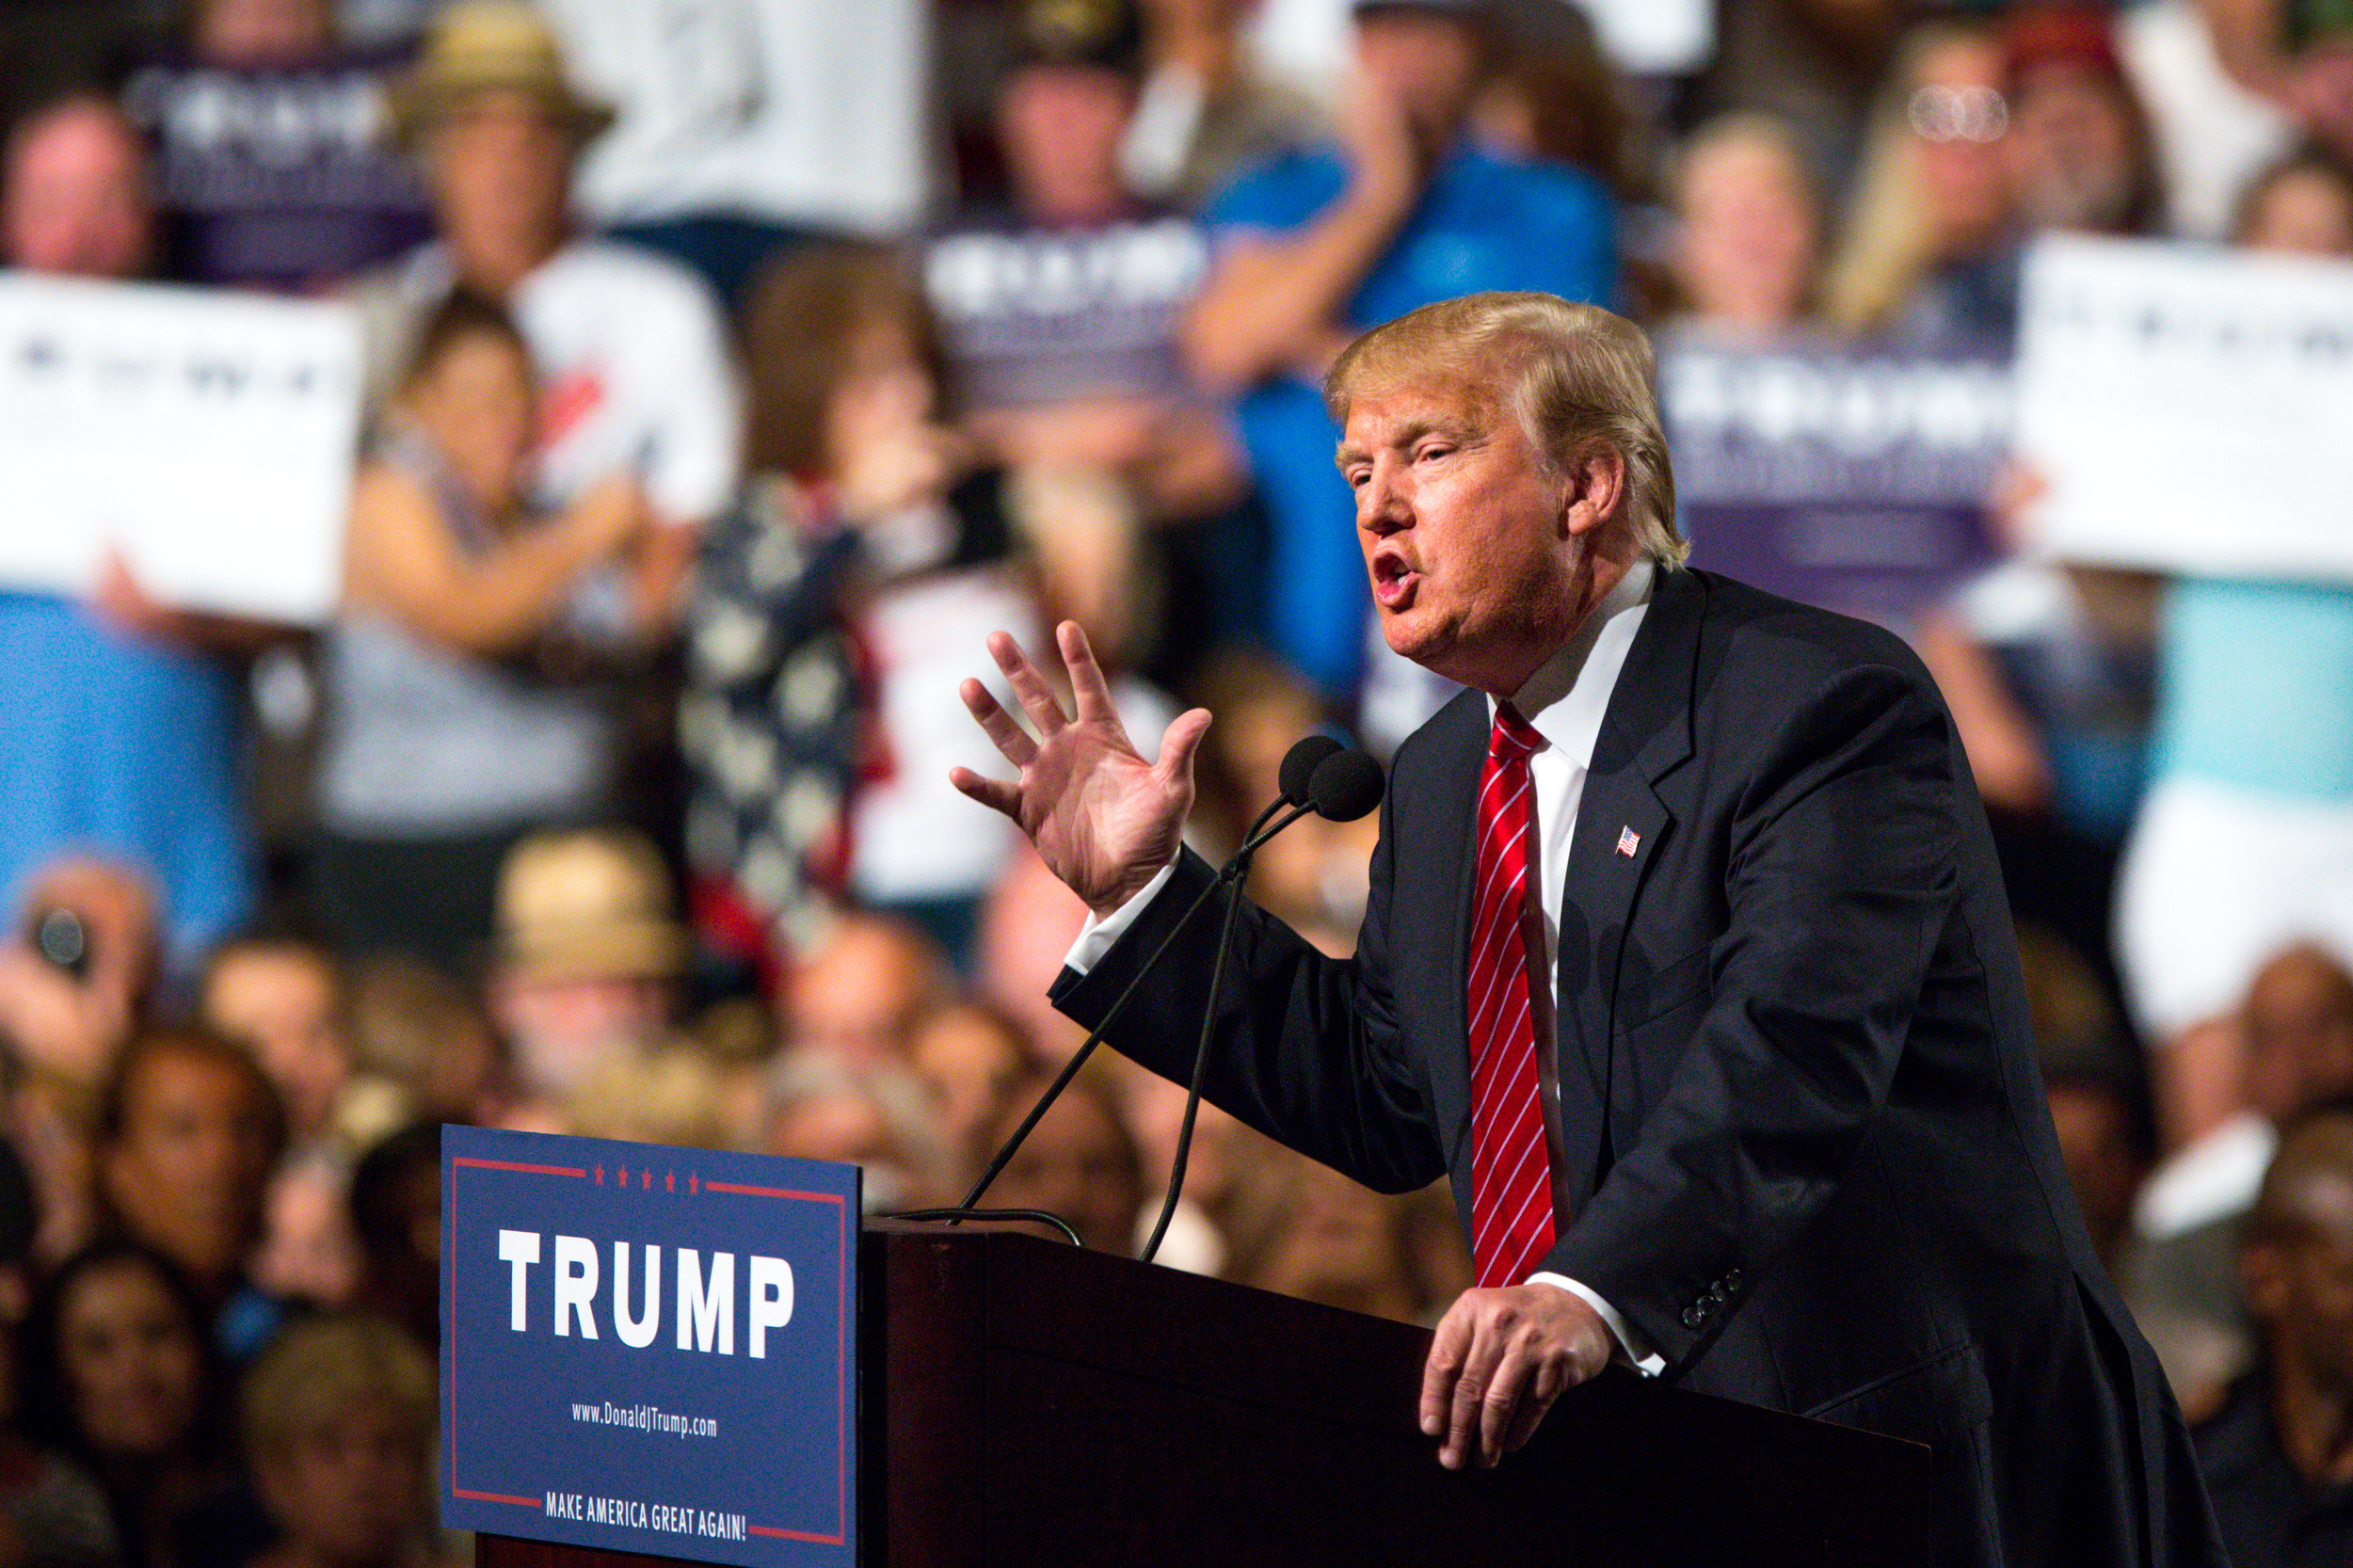 Coming to the game late in the primary,Oregon voters may not feel like their votes count on May 17, but the state's handful of delegates could be enough to put Donald Trump at or near the 1,237 delegates he needs for the GOP nomination.